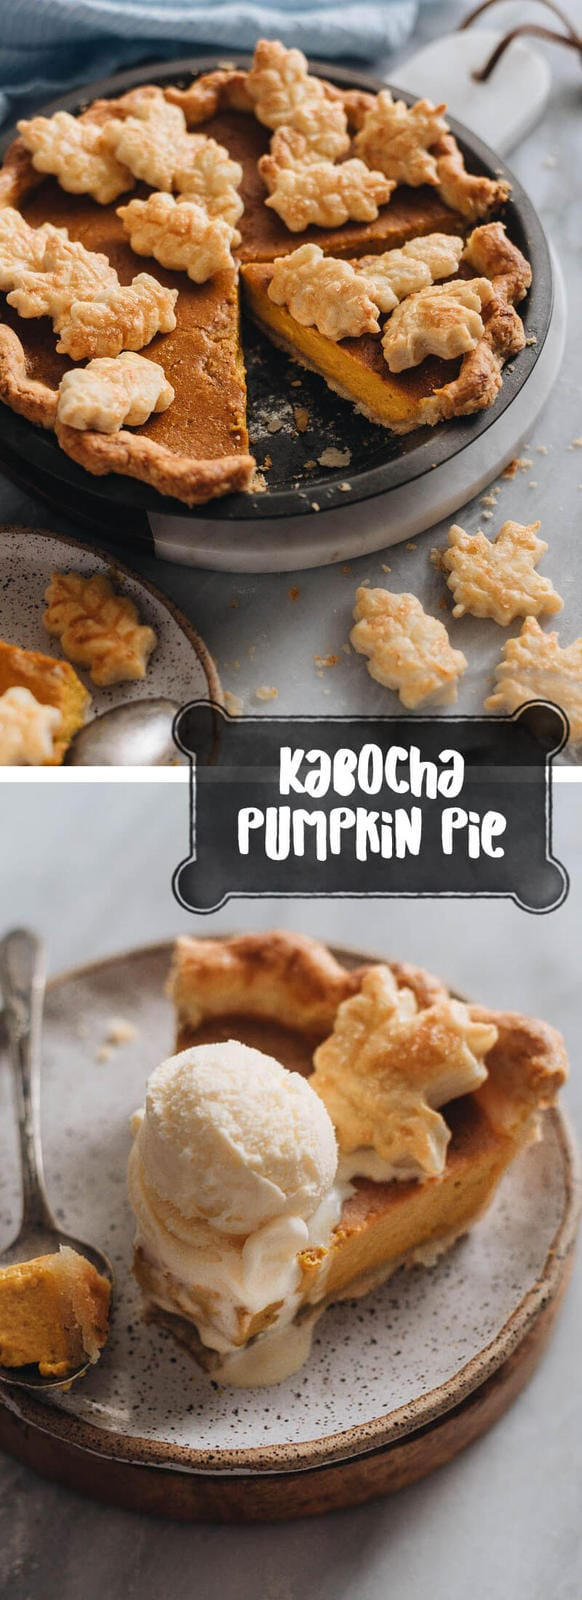 Kabocha Pumpkin Pie - This kabocha pumpkin pie recipe creates a lighter and fluffier version of the traditional pumpkin pie.